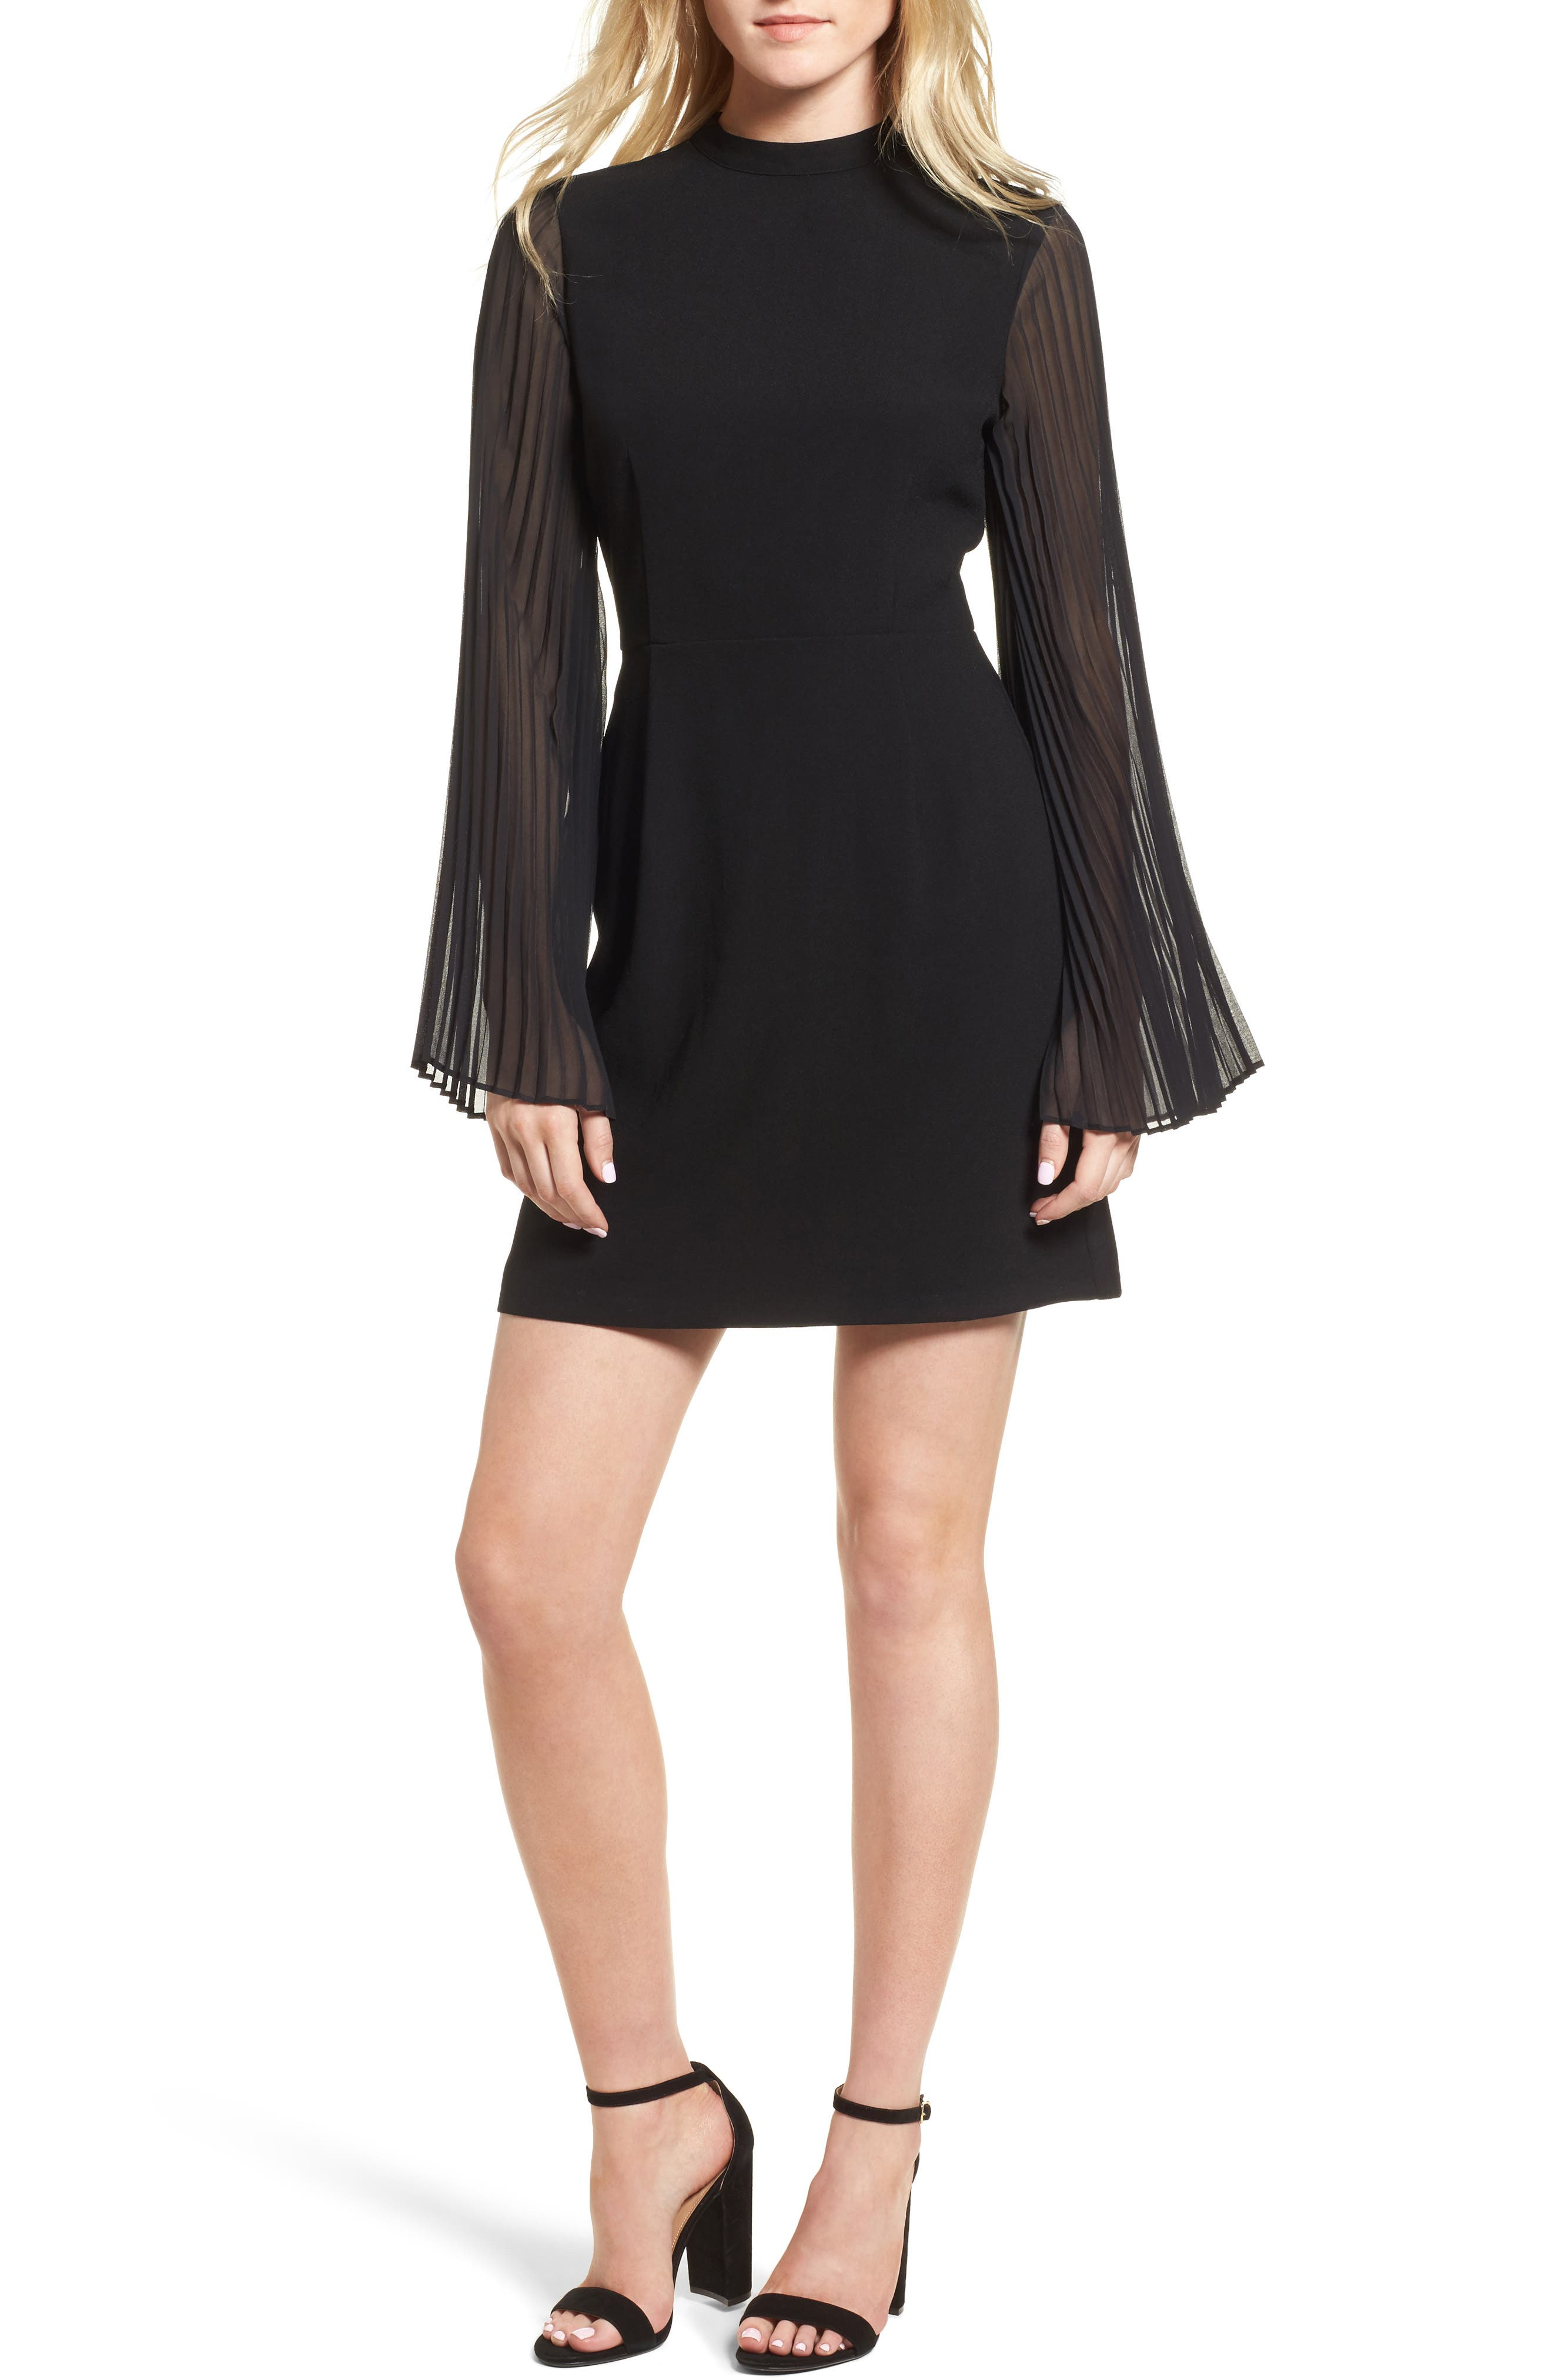 Yasmina Sheath Dress,                         Main,                         color, Black